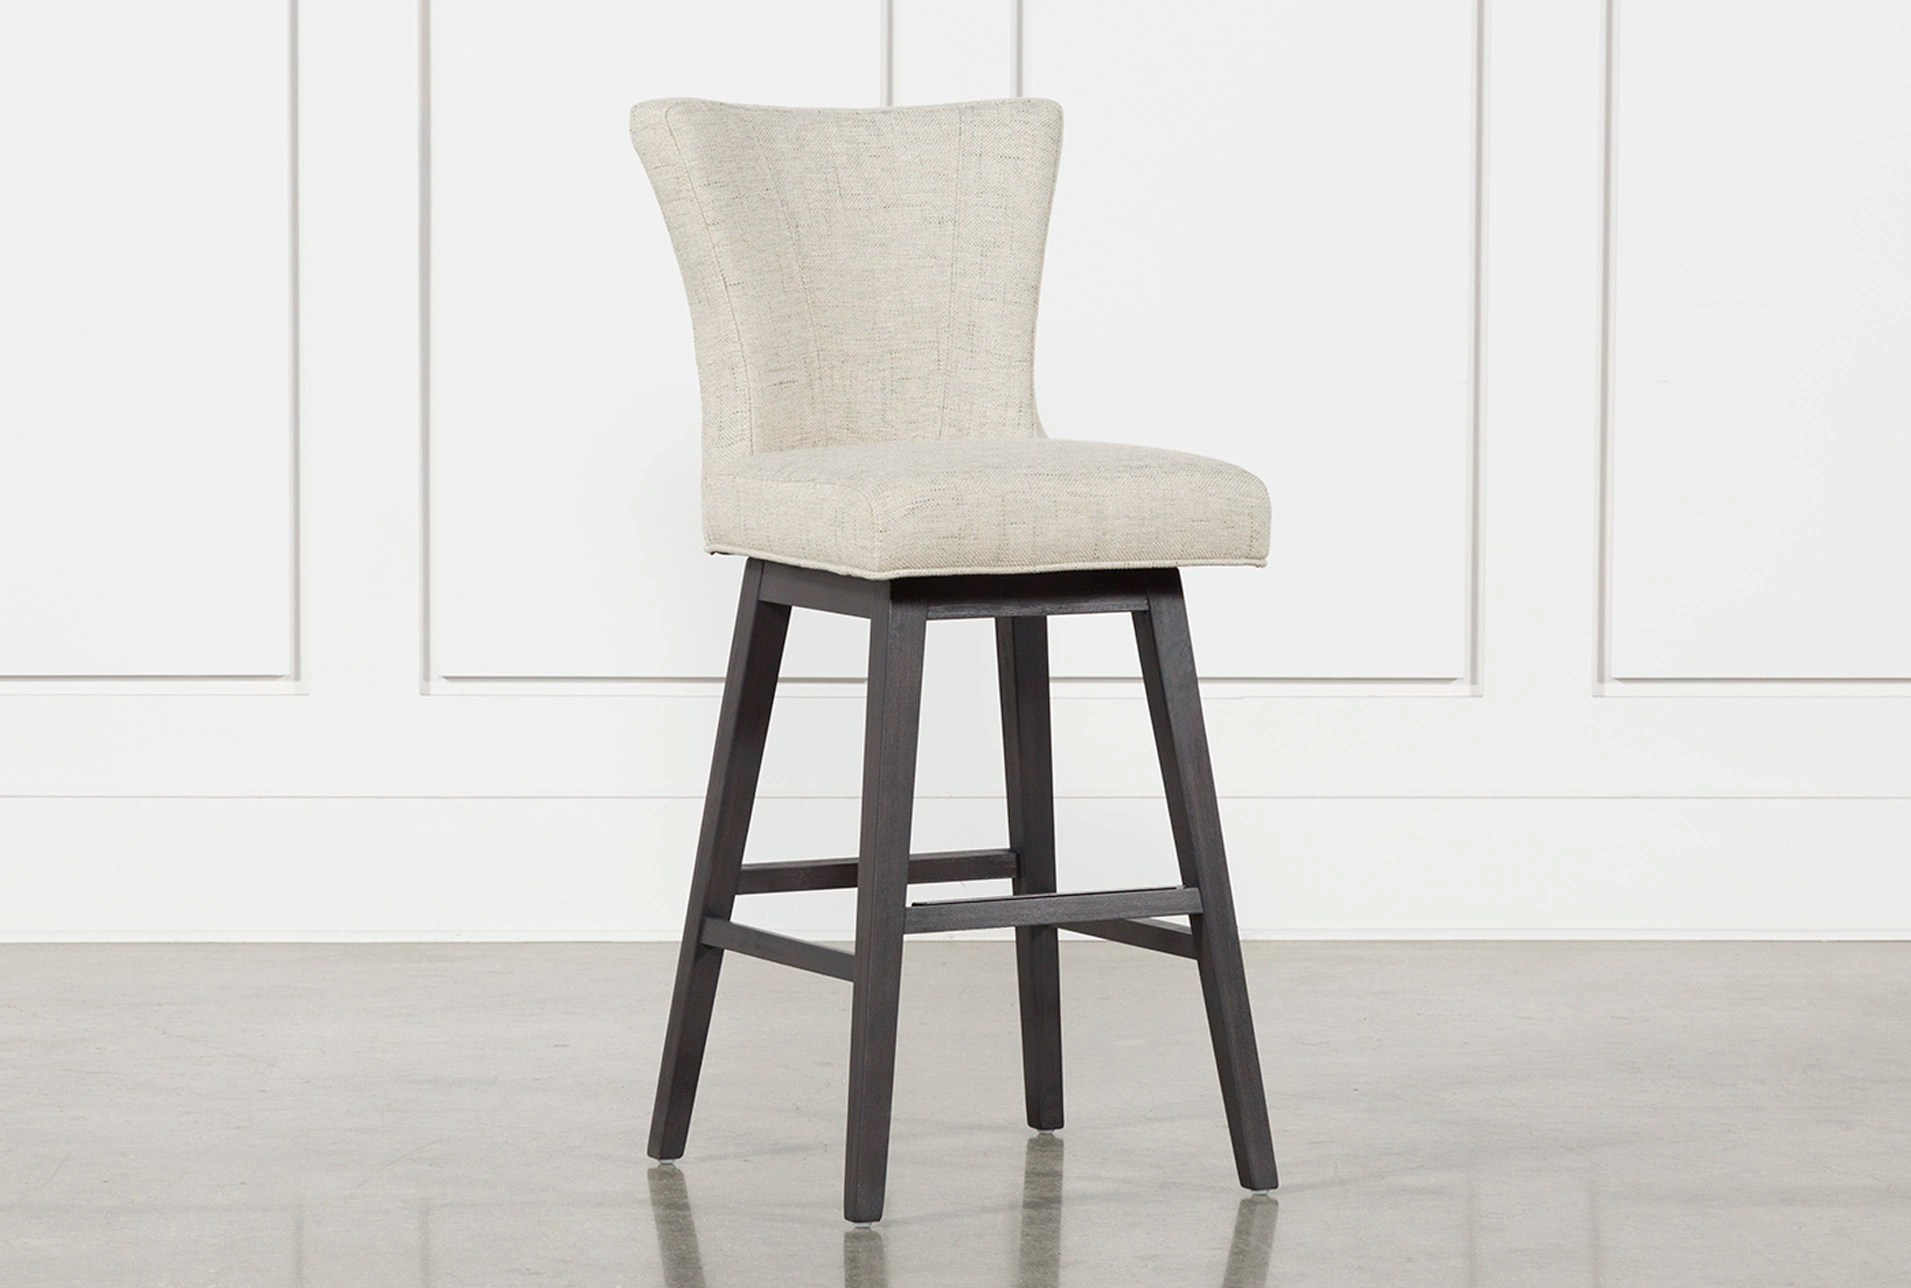 stool under chair realspace mat bar stools to fit your home decor living spaces alinea swivel 30 inch barstool